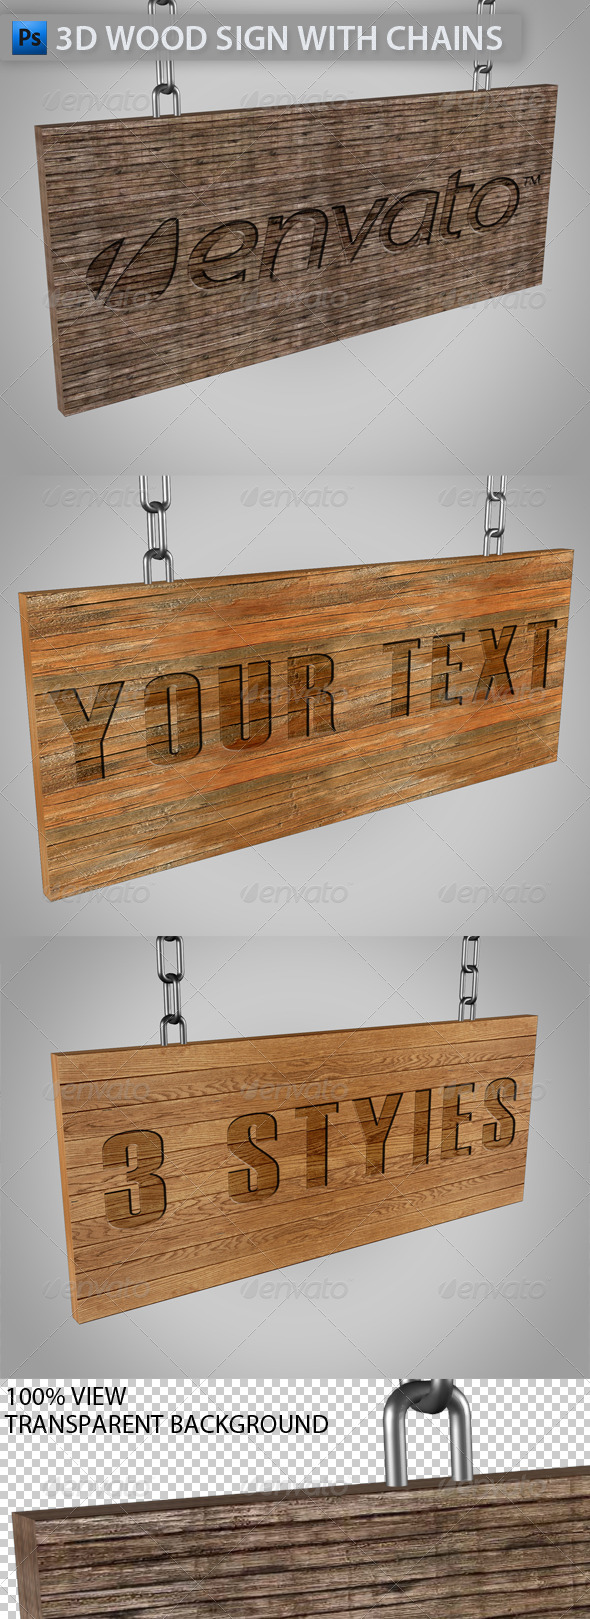 3D Wood Sign with Chains - Objects 3D Renders